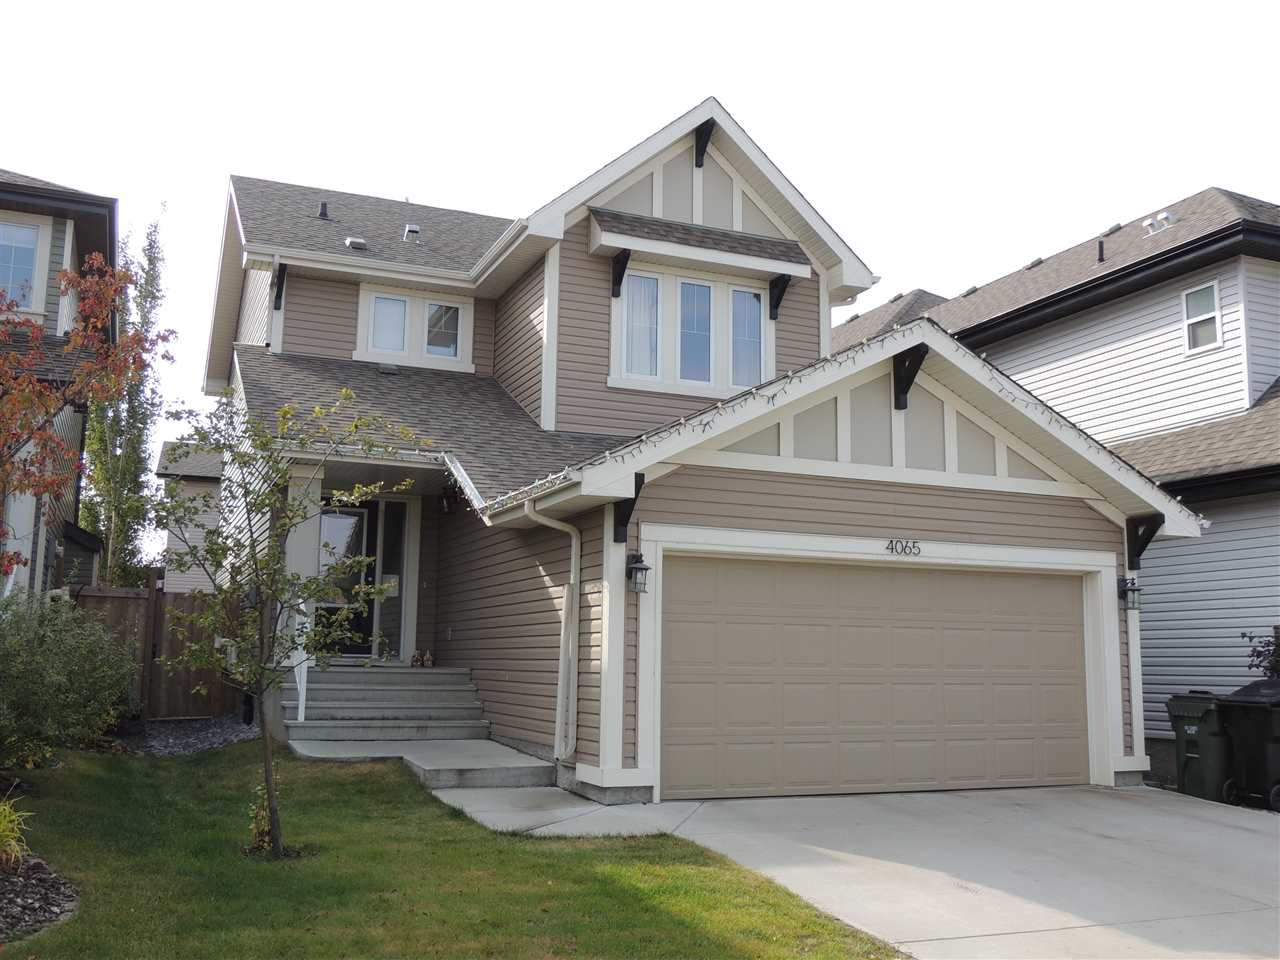 4065 SUMMERLAND Drive, 3 bed, 3 bath, at $404,999